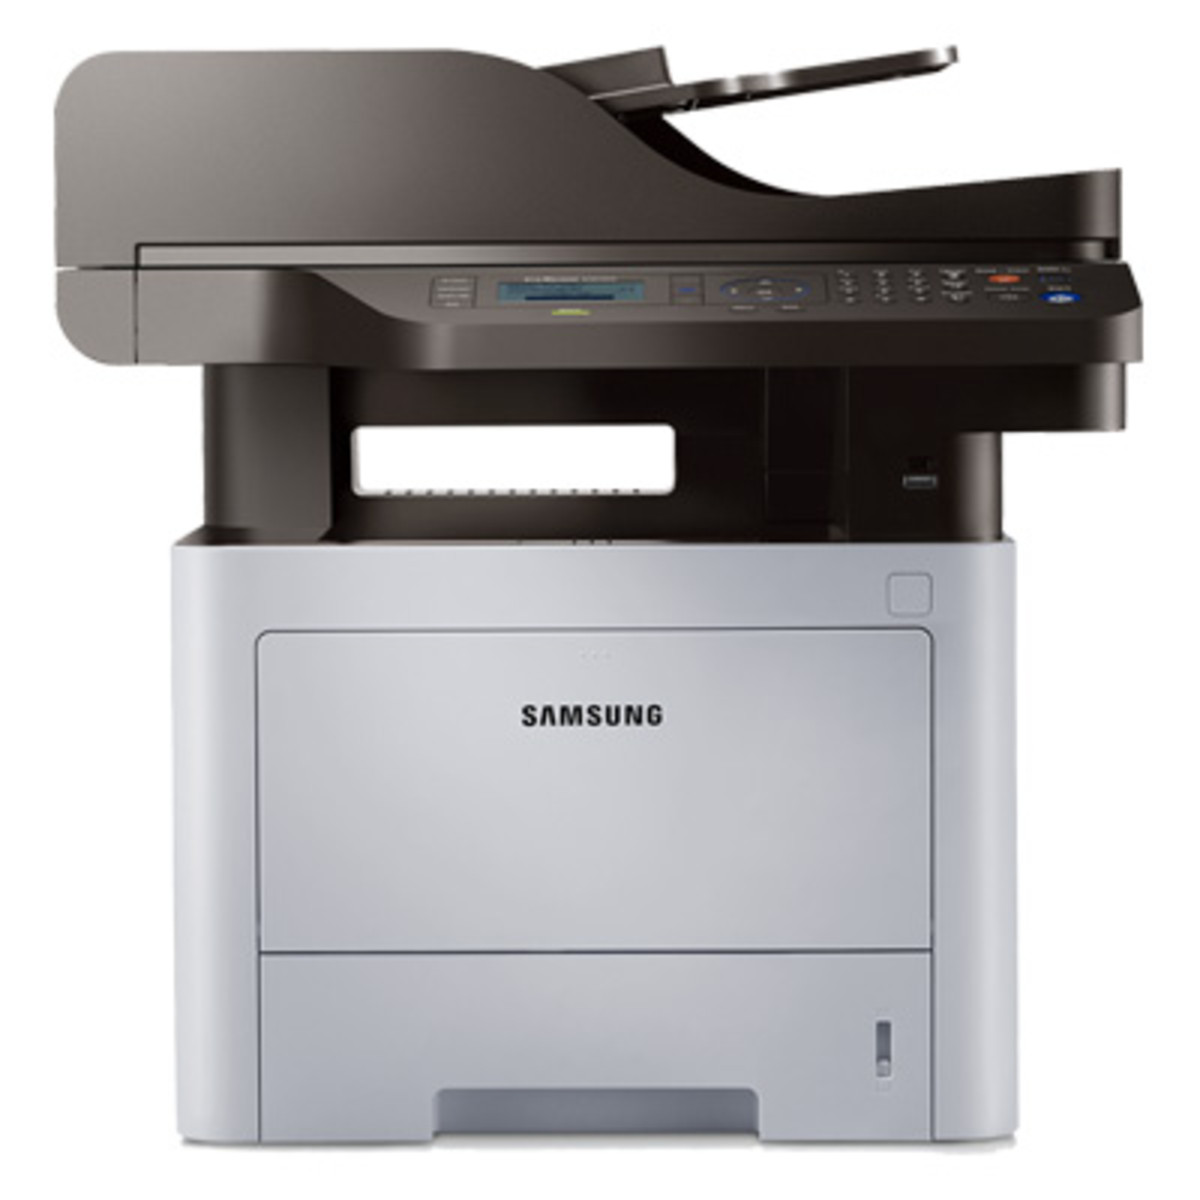 Samsung ProXpress SL-M4070FR Mono Laser Printer